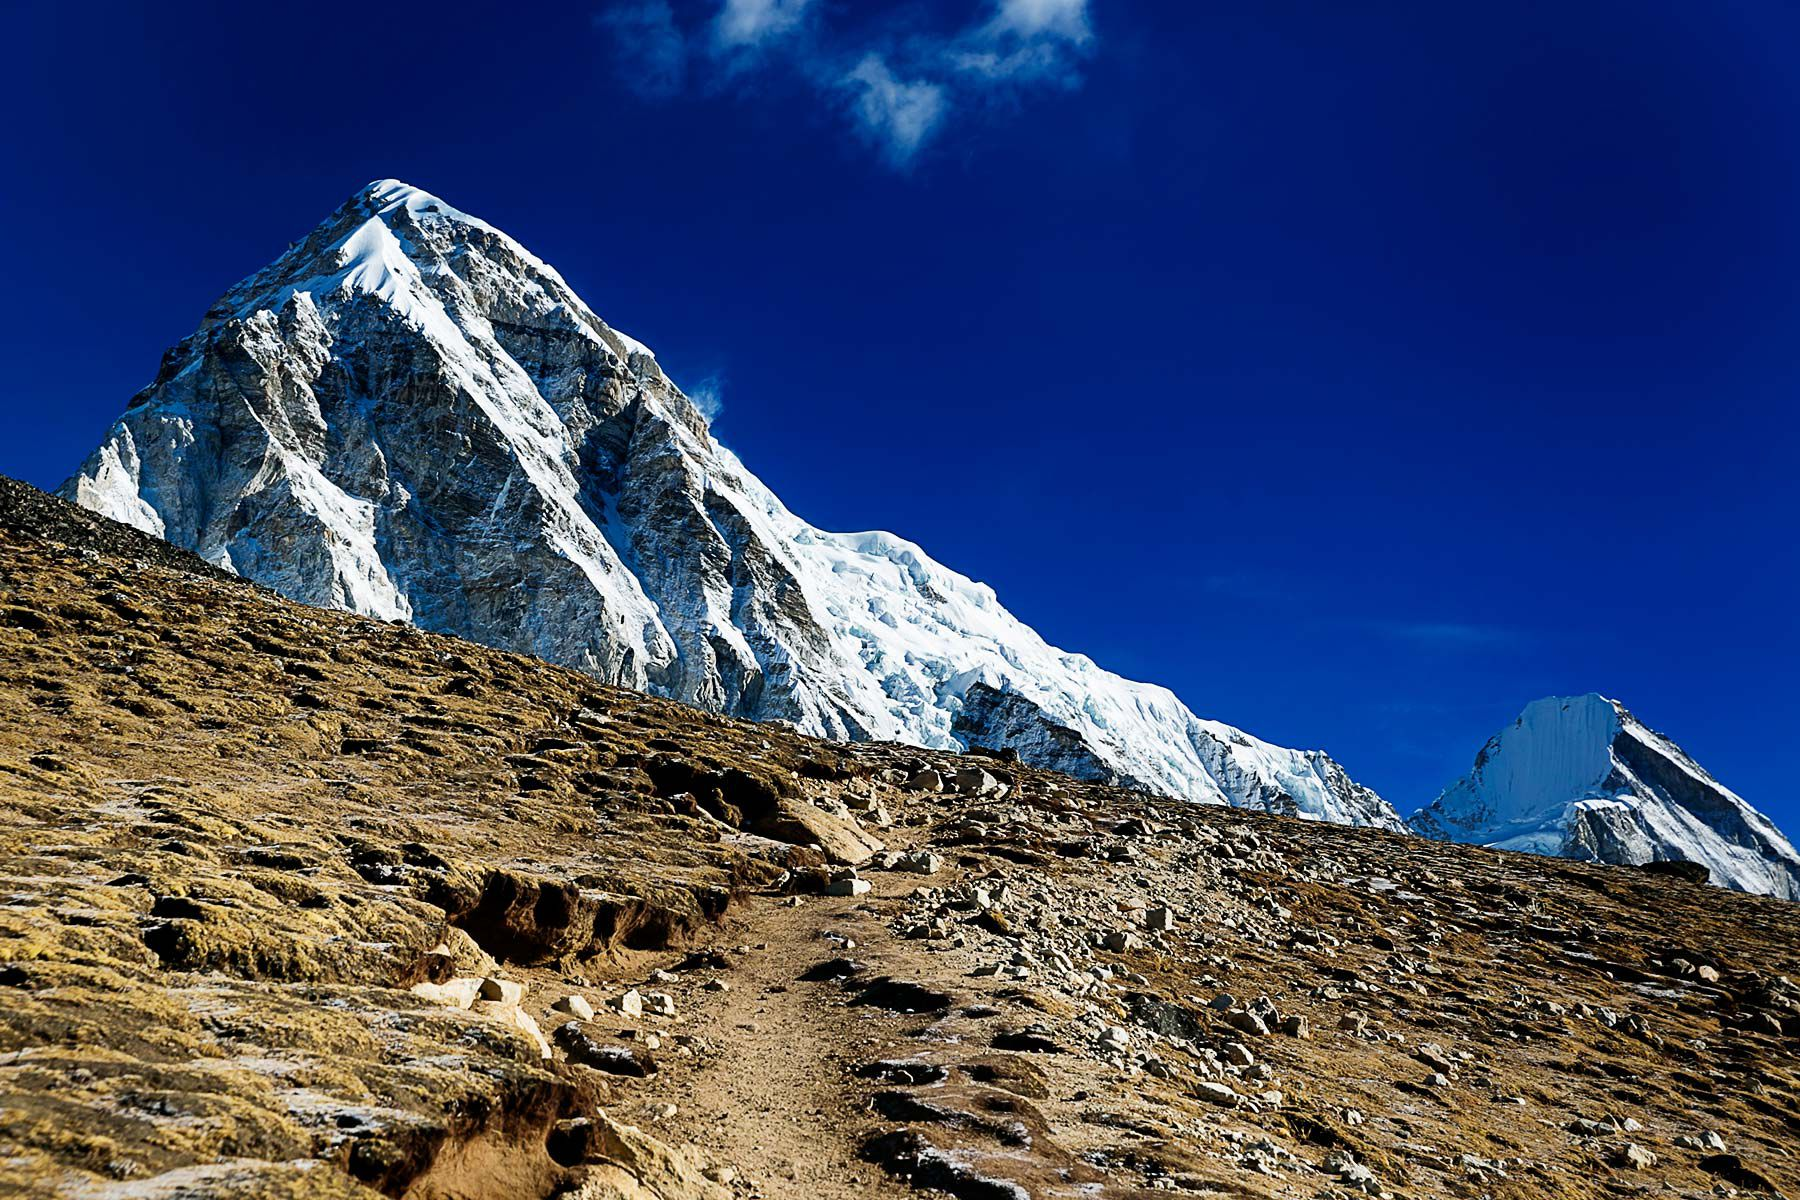 narrow trail to the peak of mount Everest